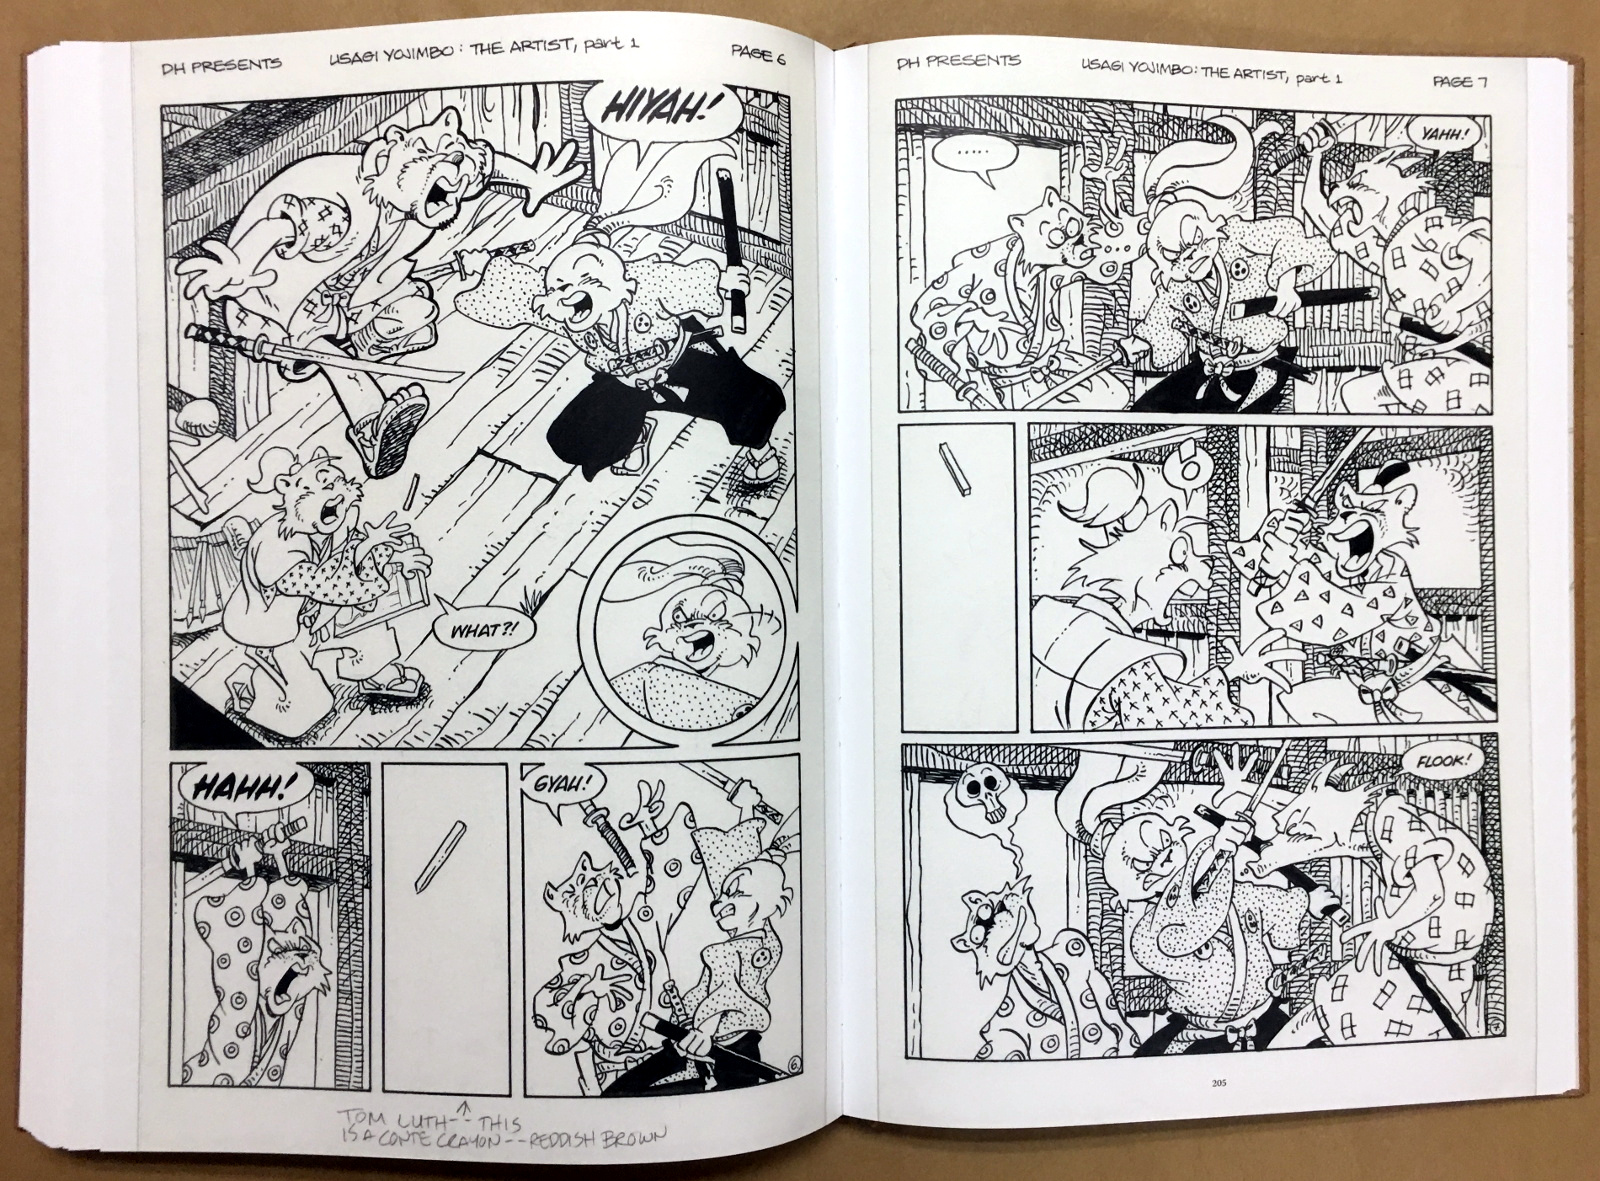 Usagi Yojimbo: The Artist and Other Stories Gallery Edition 38